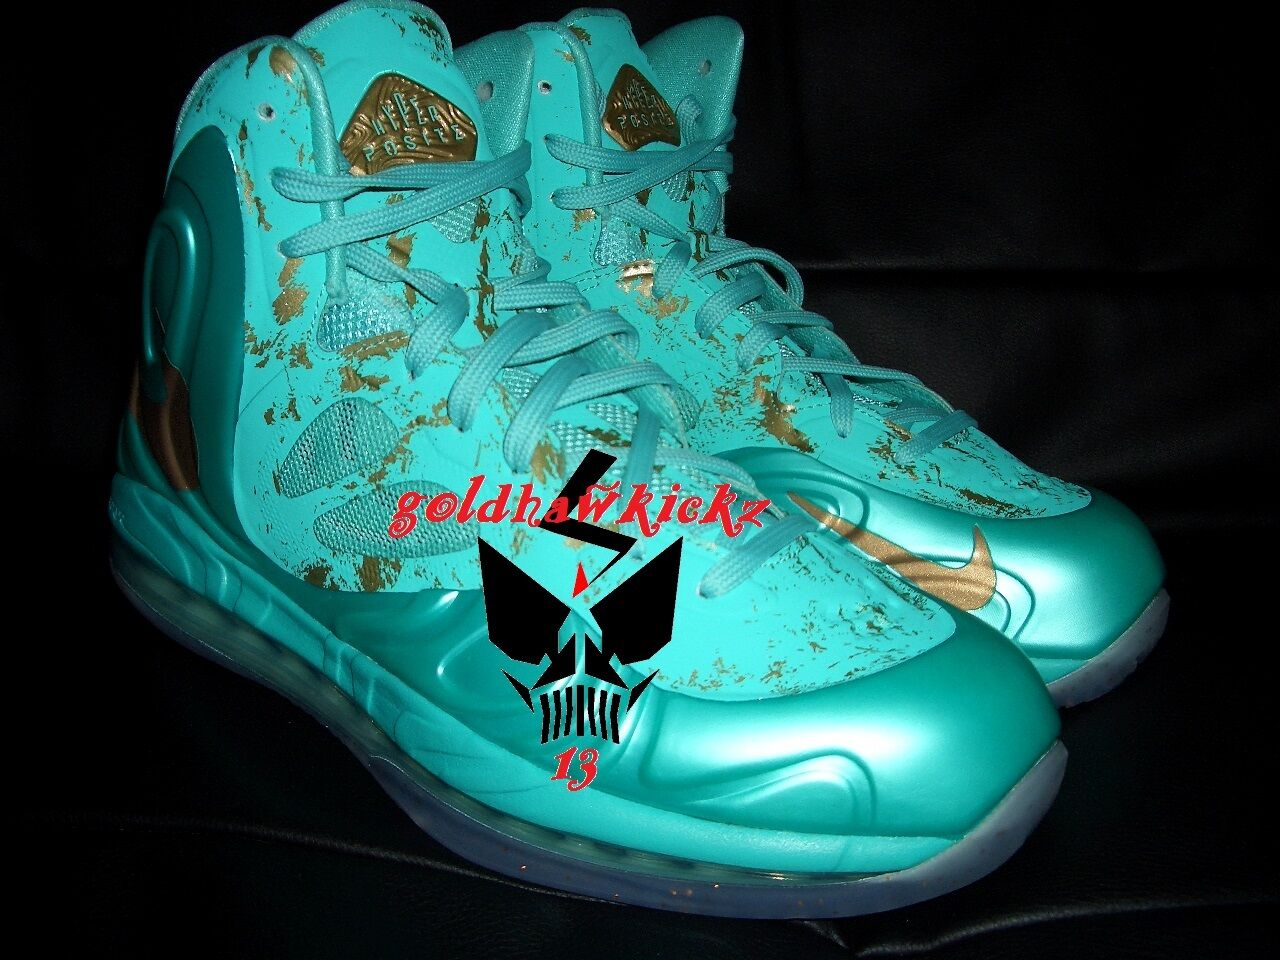 Nike Hyperposite Statue Of Liberty SOL 10 galaxy barkley foamposite rondo